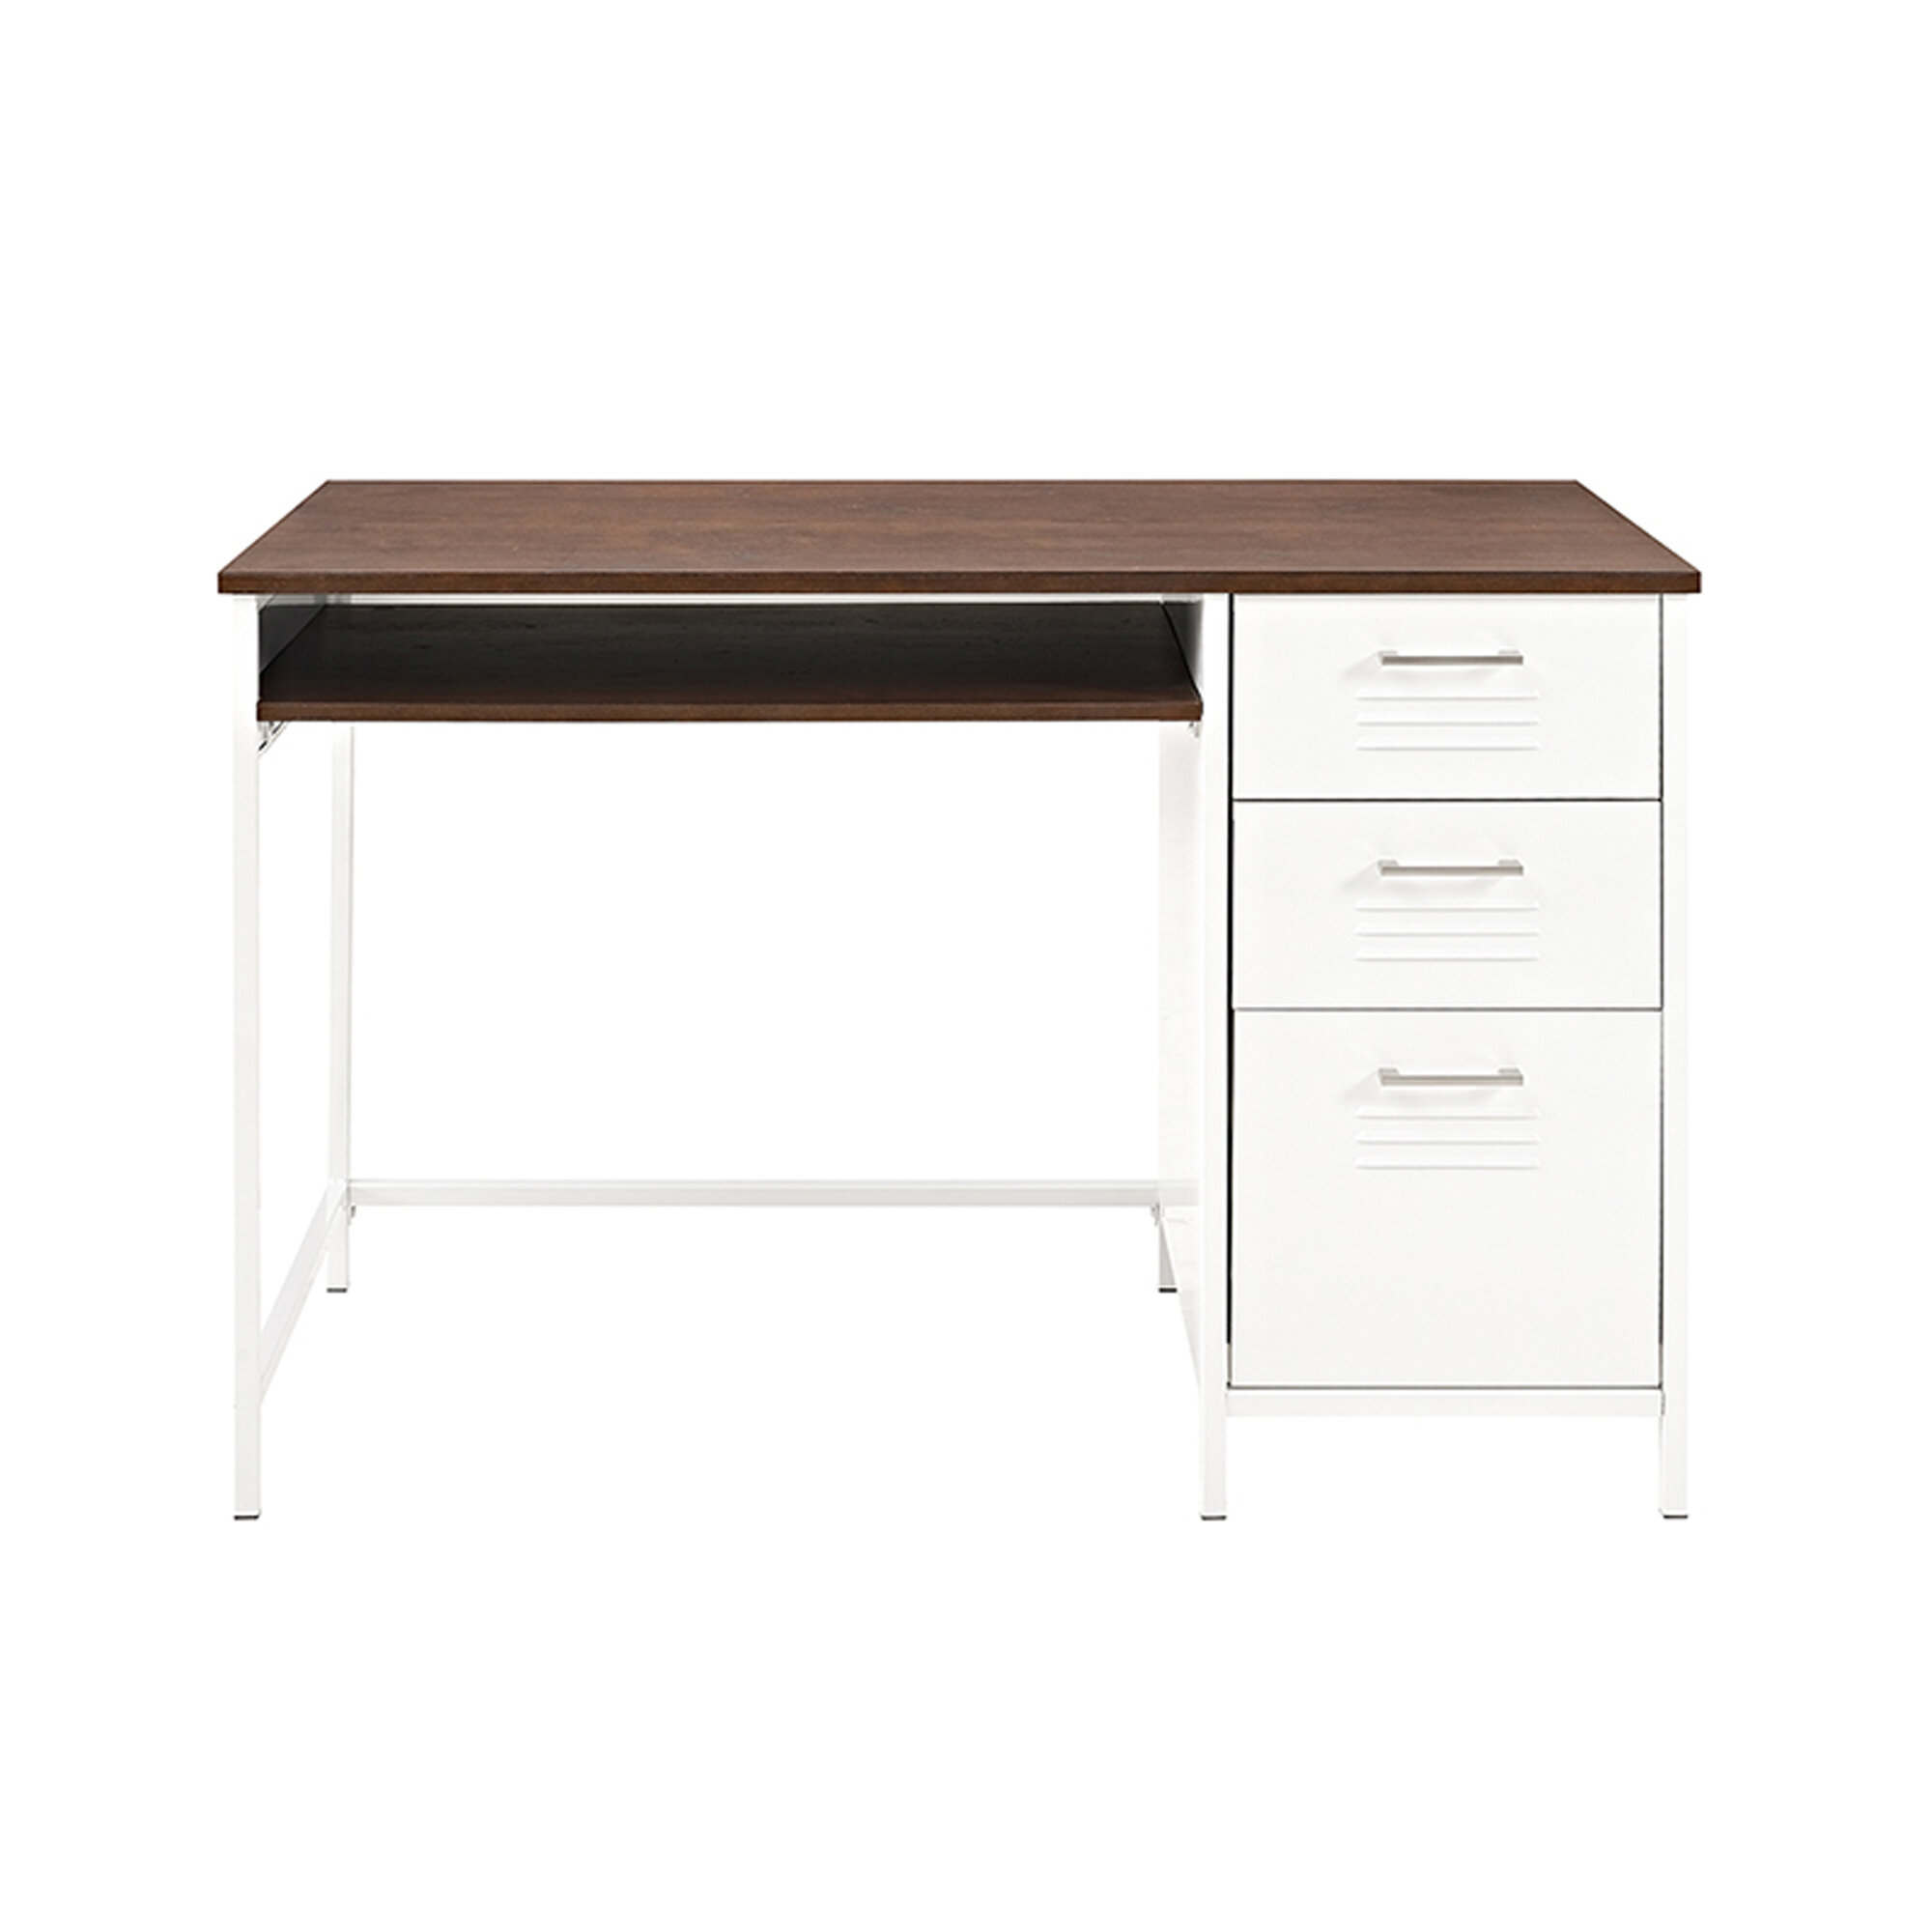 i l office metal table products right silver the drawers desk computer legs theofficefurnituredepot